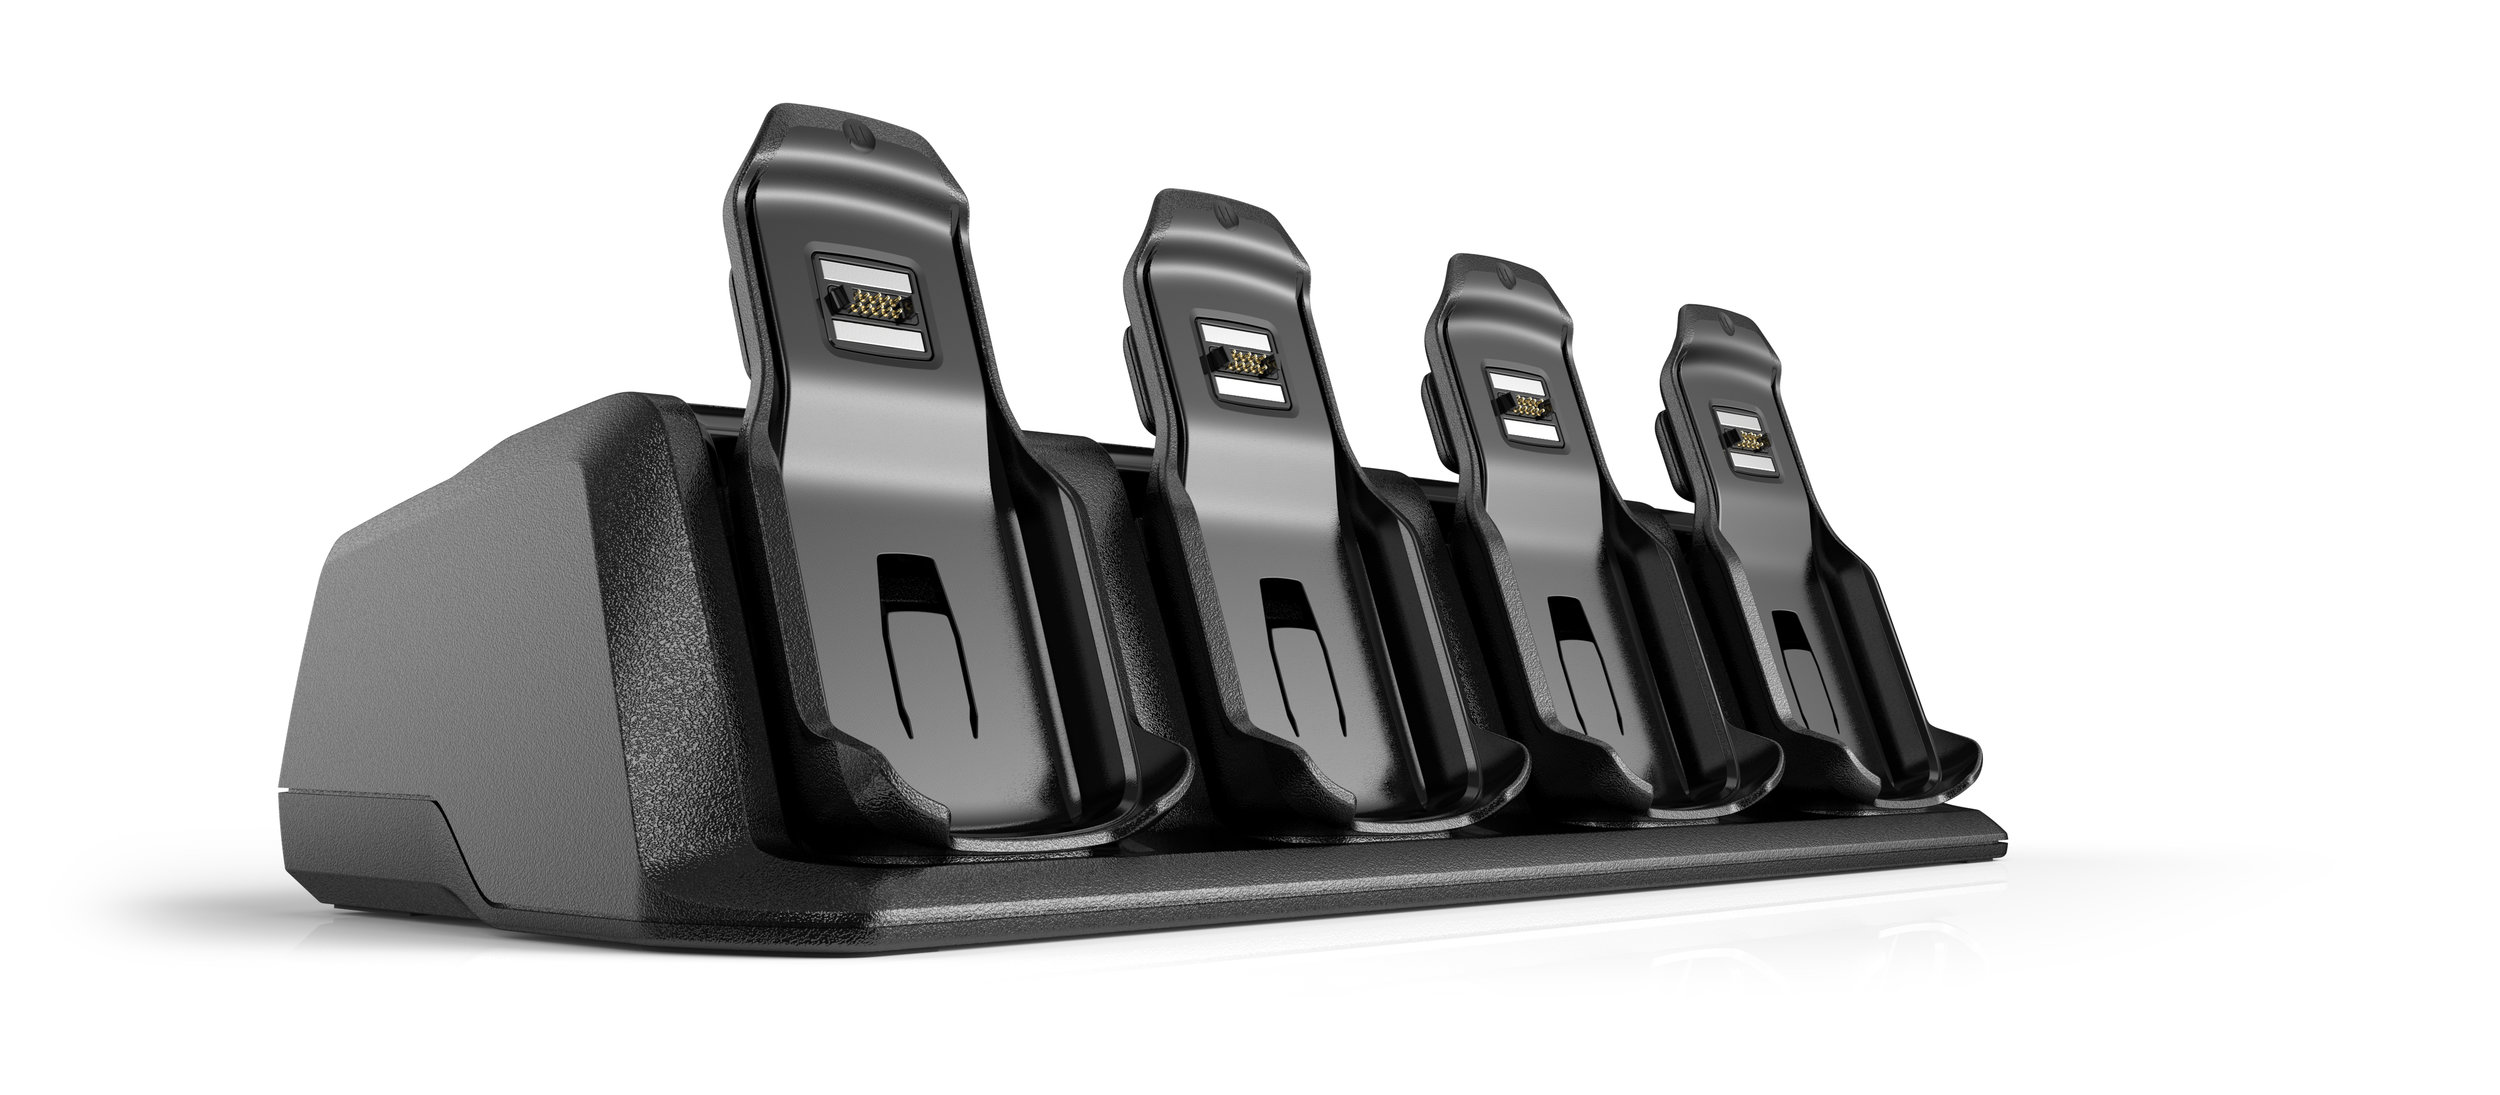 Modular multi-slot charger with server rack mounting